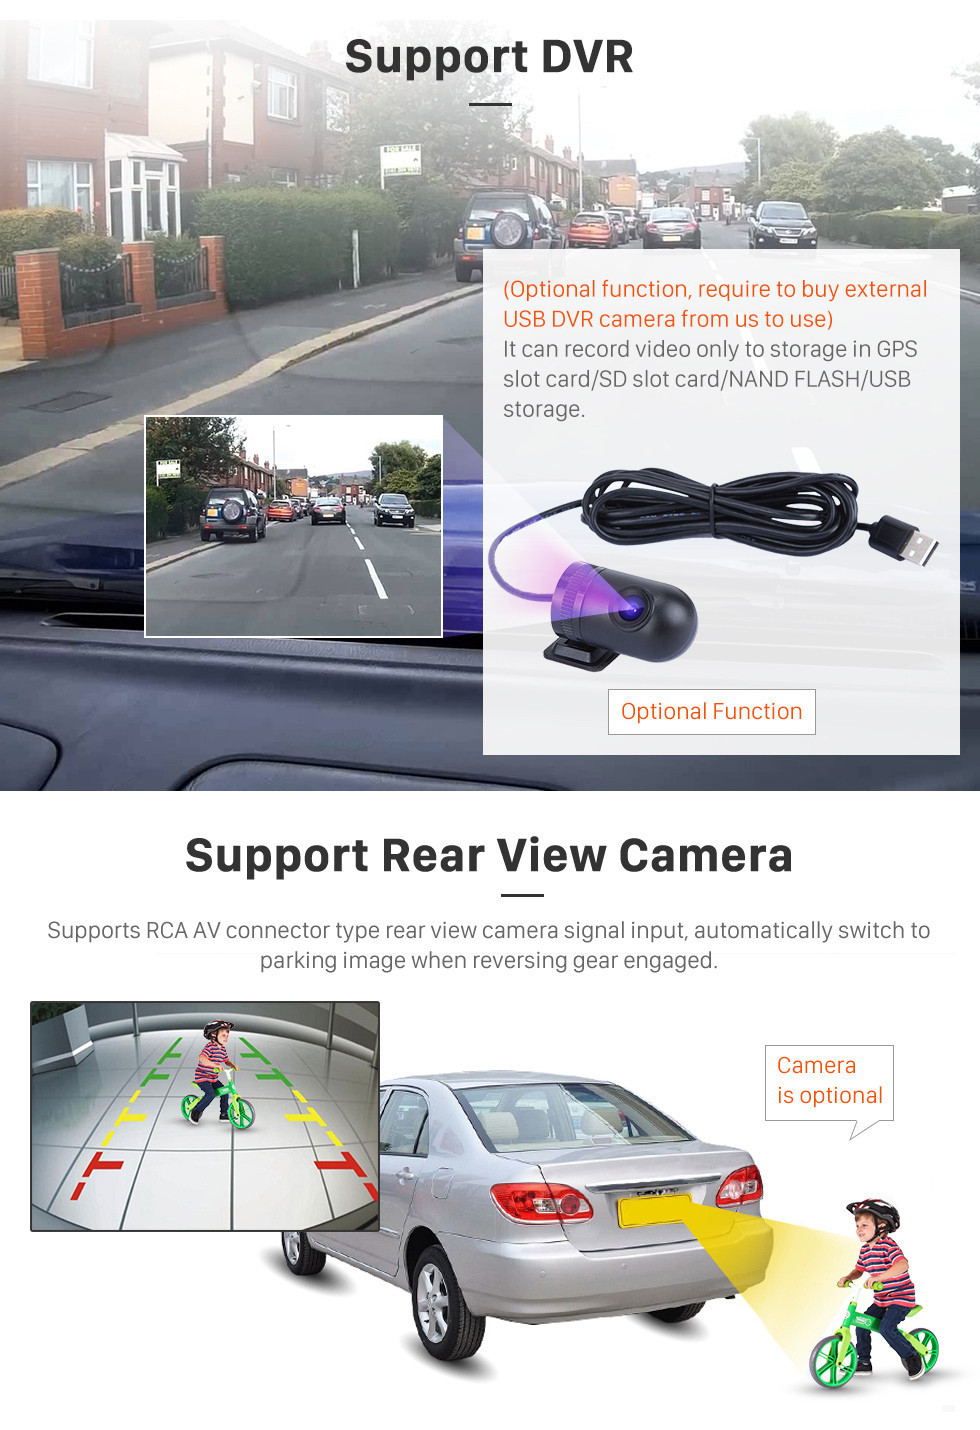 Seicane 8 inch Android 10.0 2000-2005 Mercedes-Benz C-Class W203 C180 C200 C220 C230 C240 Bluetooth GPS Navigation Car Radio Support 3G WIFI DVR Rearview Camera Digital TV Steering Wheel Control